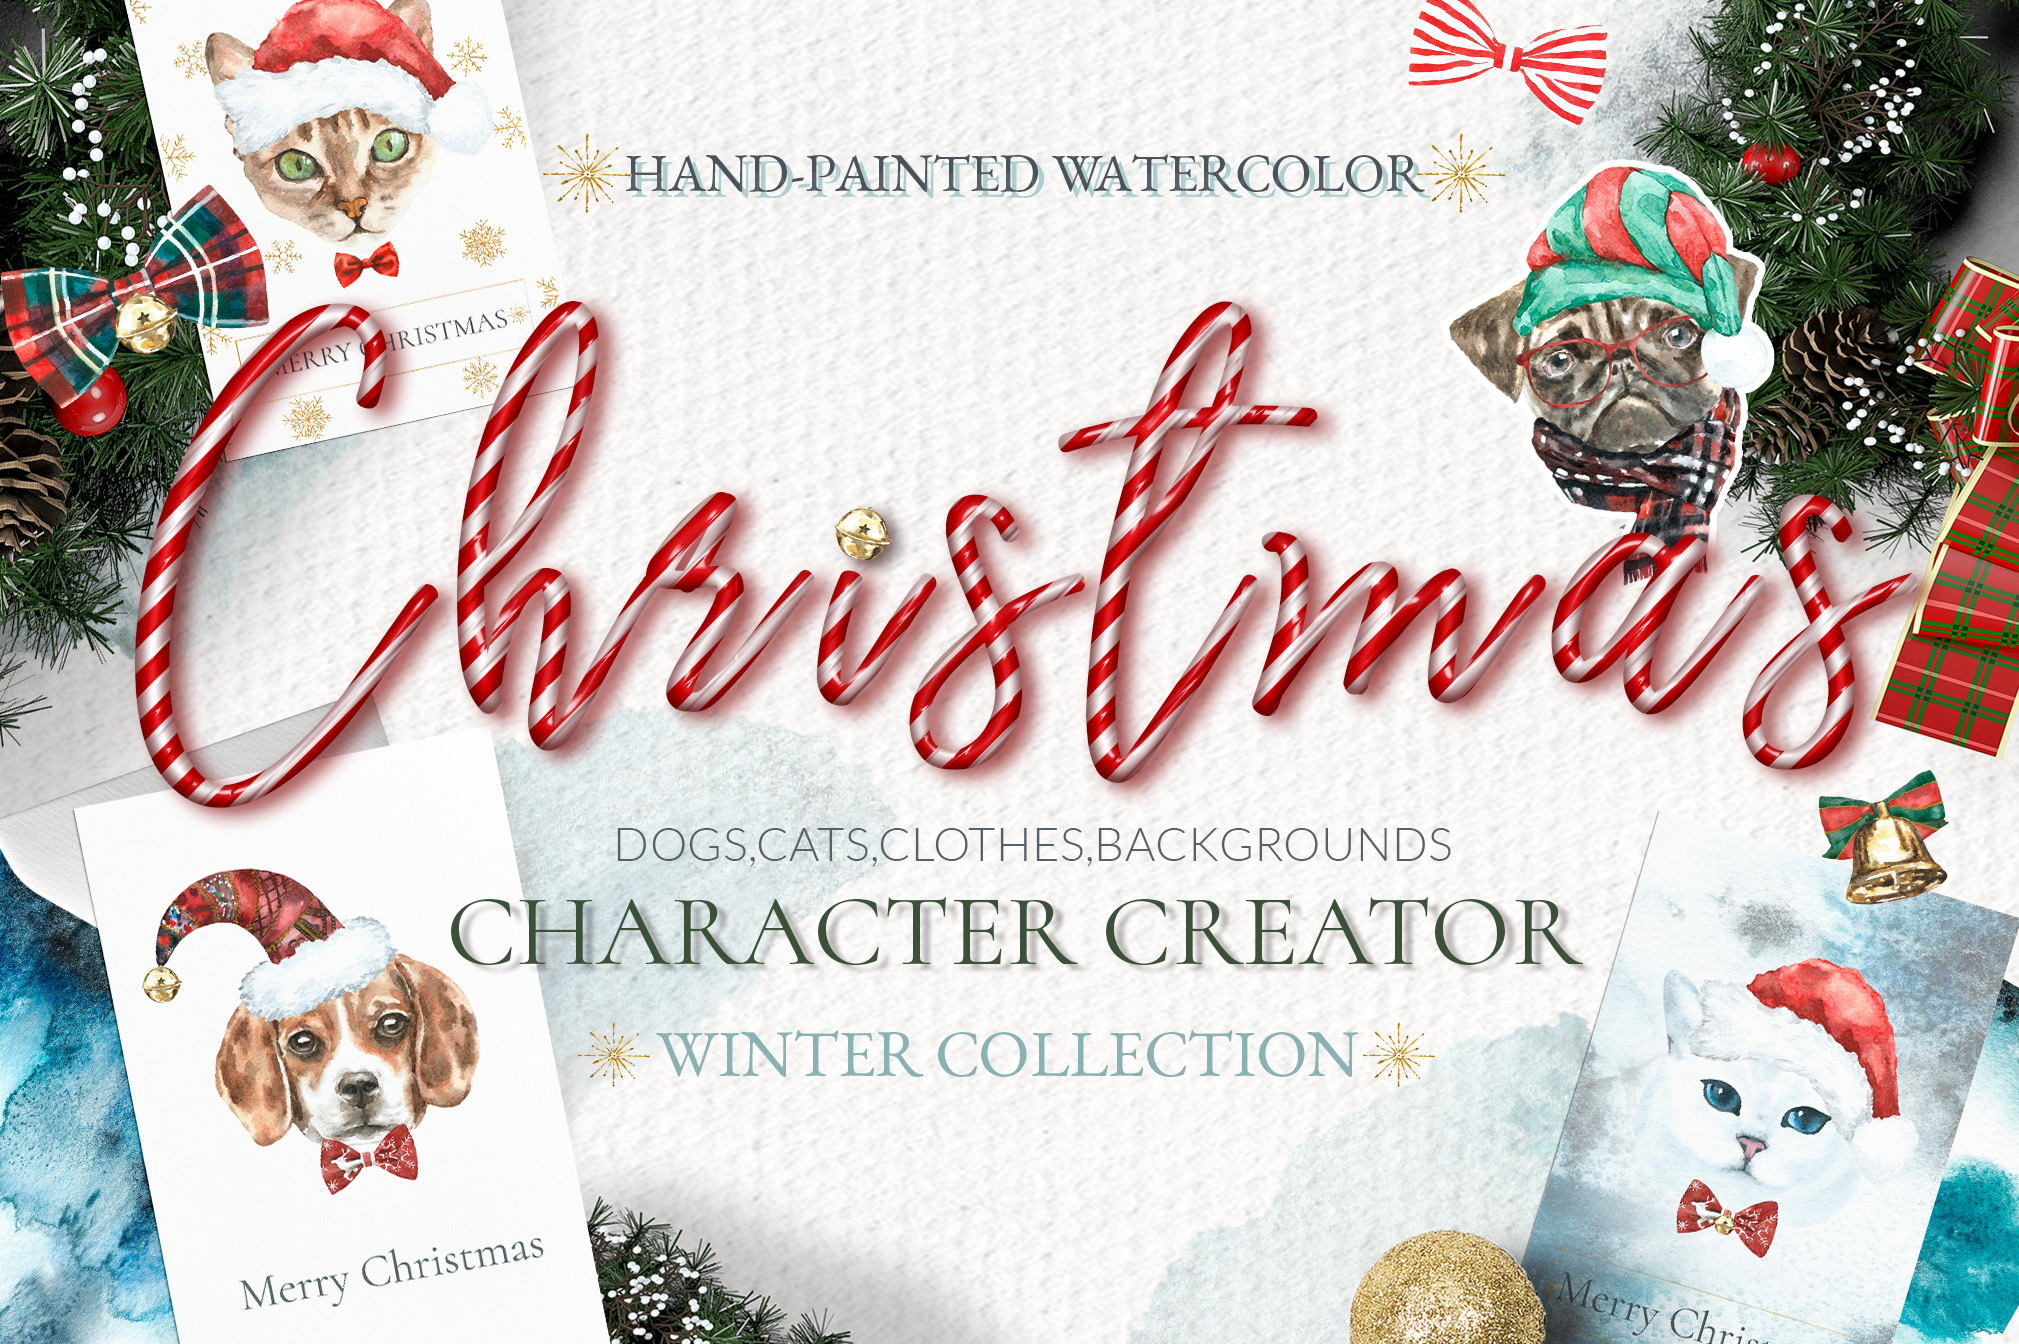 Christmas Animal Creator.Watercolor Dogs & Cats example image 1